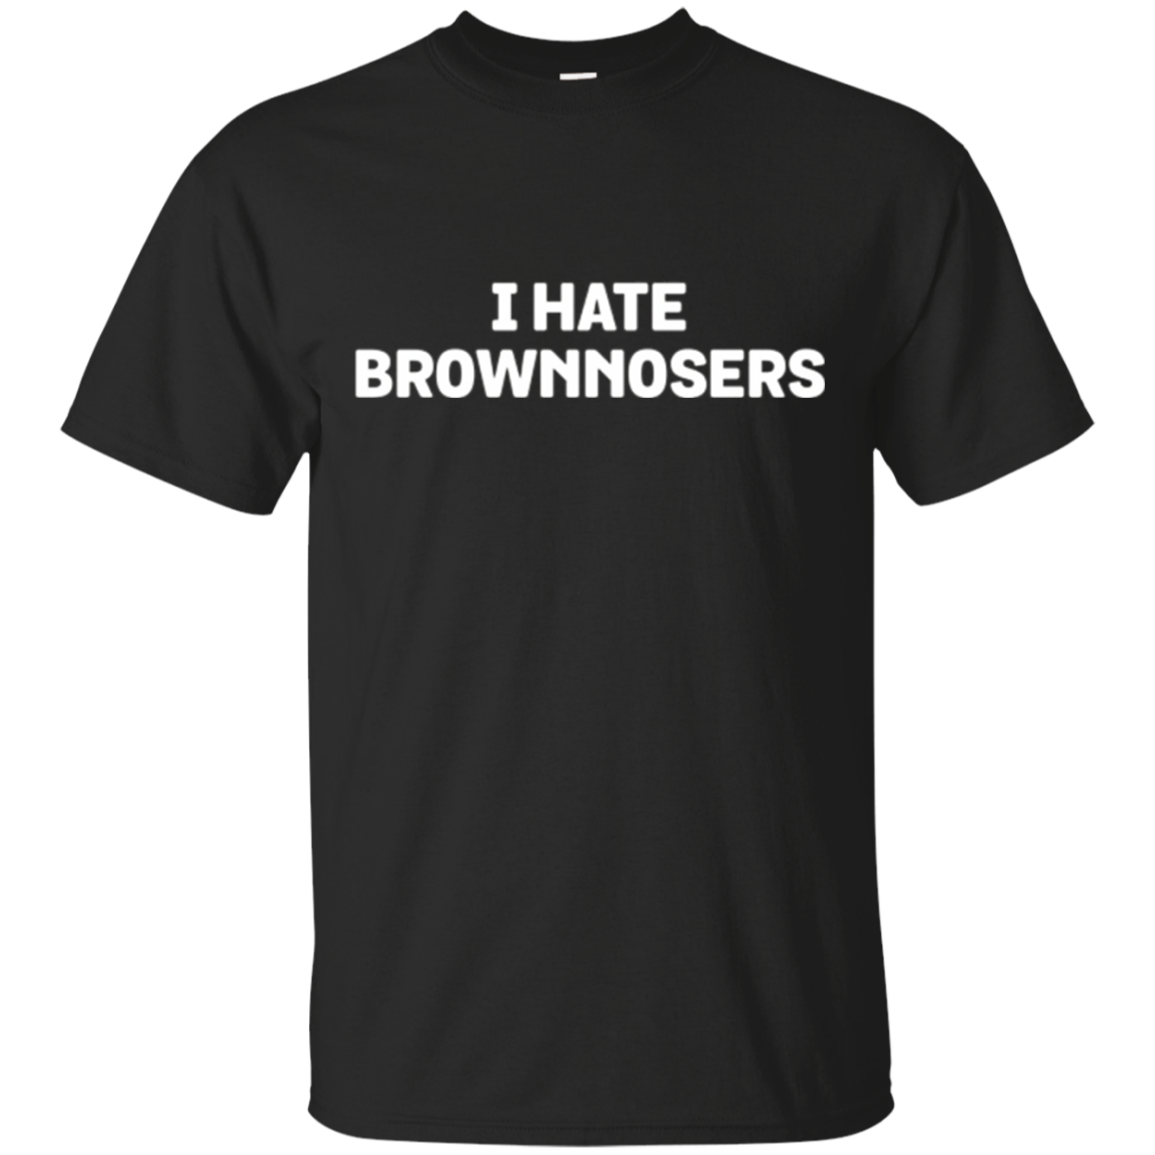 I Hate Brownnosers T-Shirt - Funny Brown Noser Hater Tee